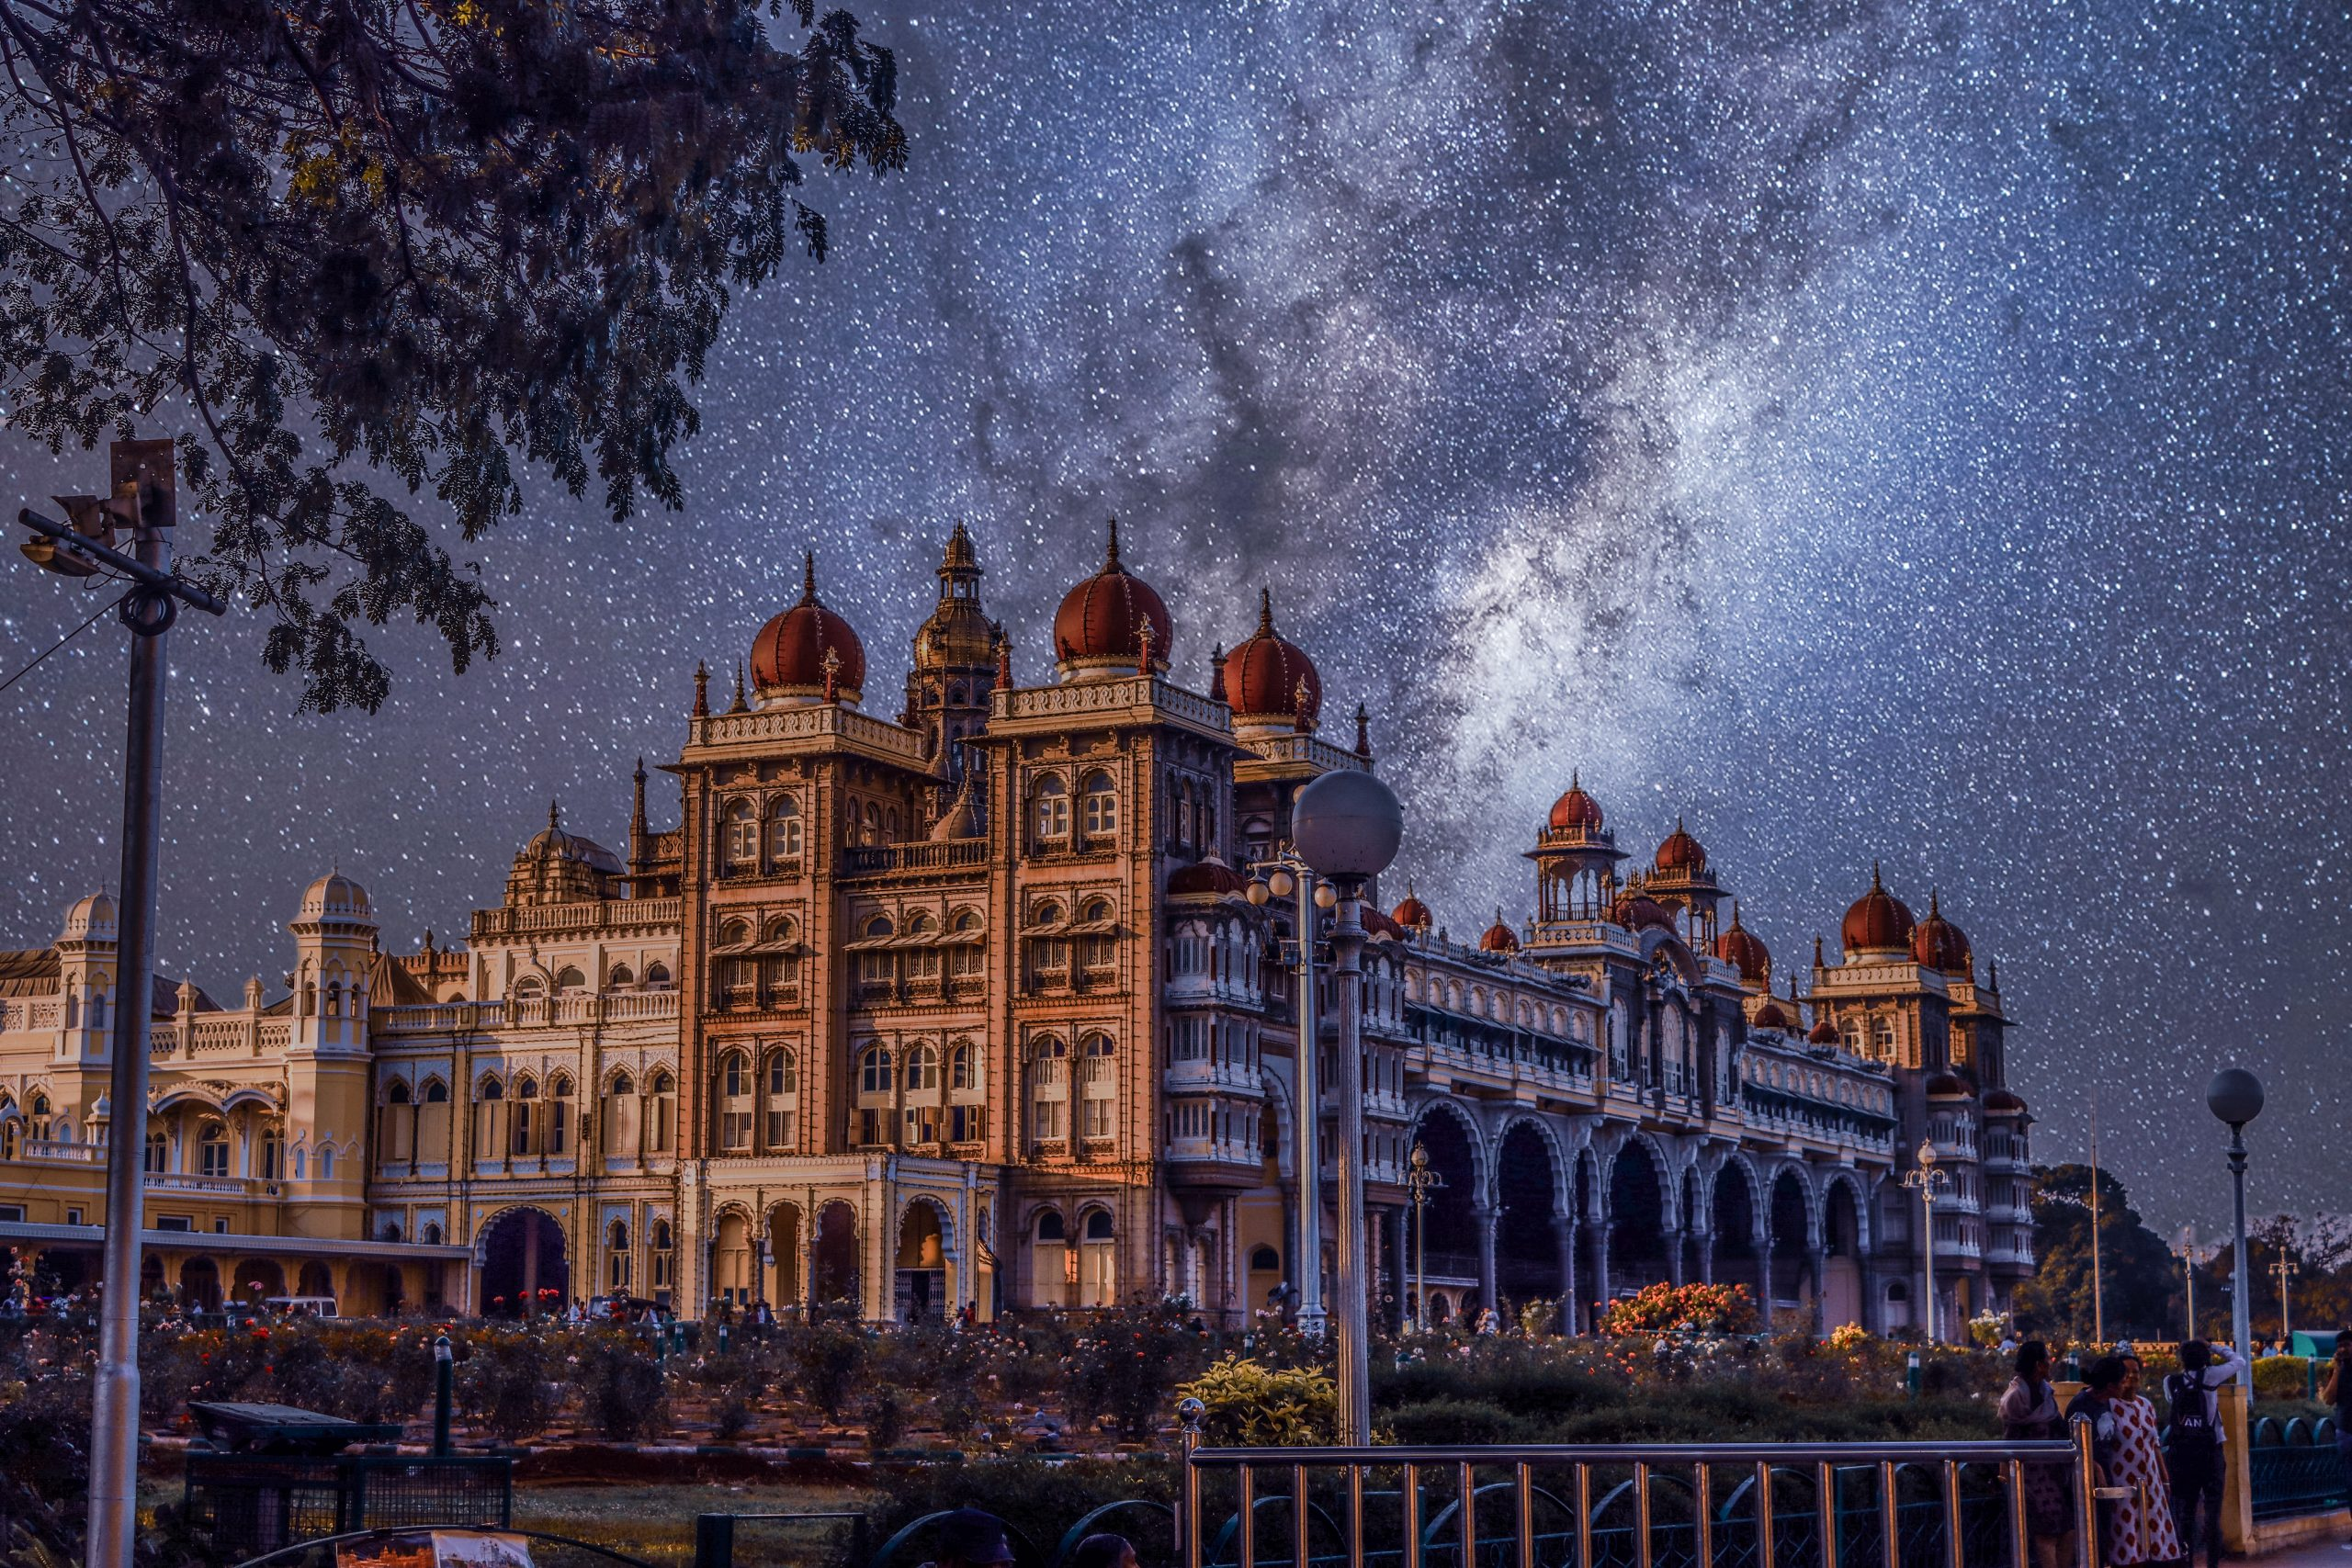 A view of Mysore Palace